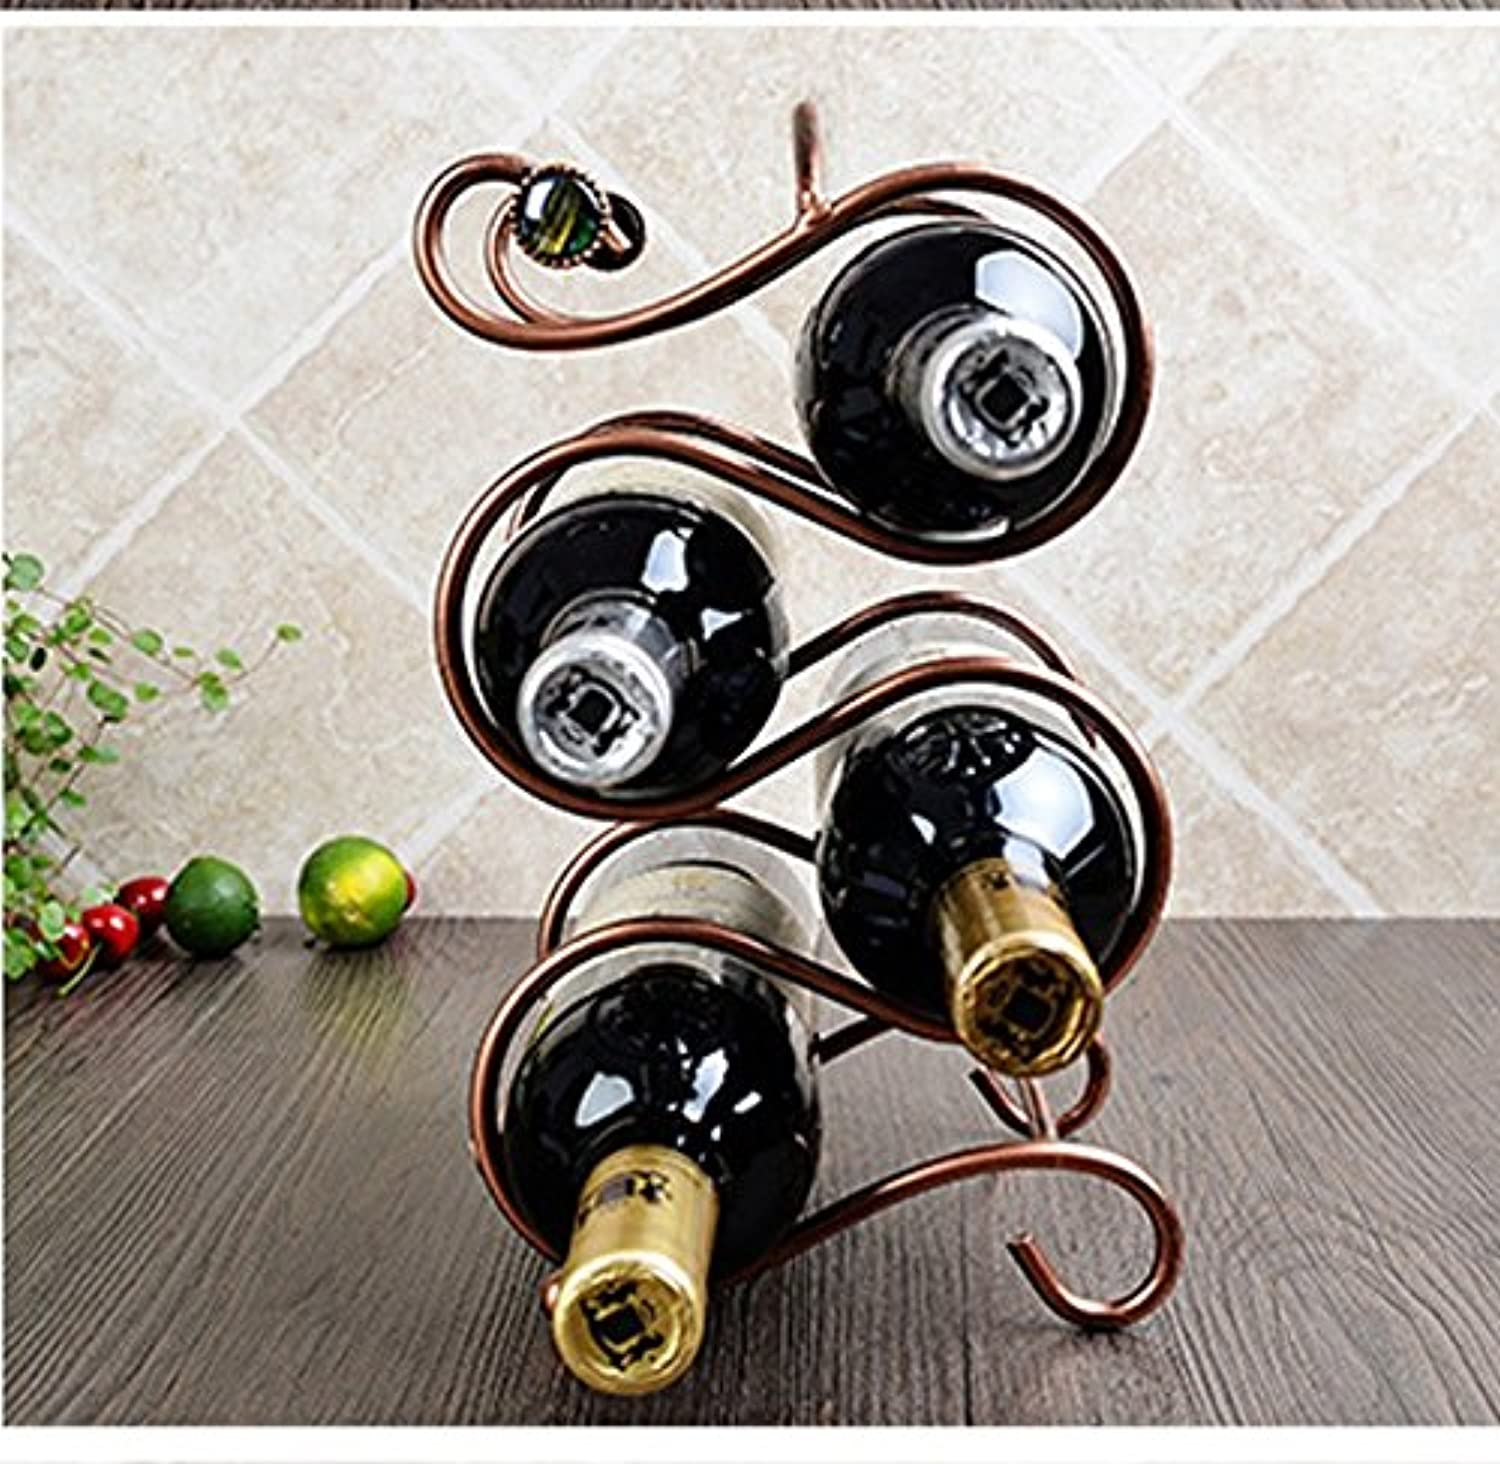 connotación de lujo discreta LYYHJJ ZHDC Creativo Vino Tinto Estante De Hierro Decoración Decoración Decoración Vino Estante Estilo Europeo De Multi-embotellado Inicio Multifunction (Color    2)  nueva gama alta exclusiva